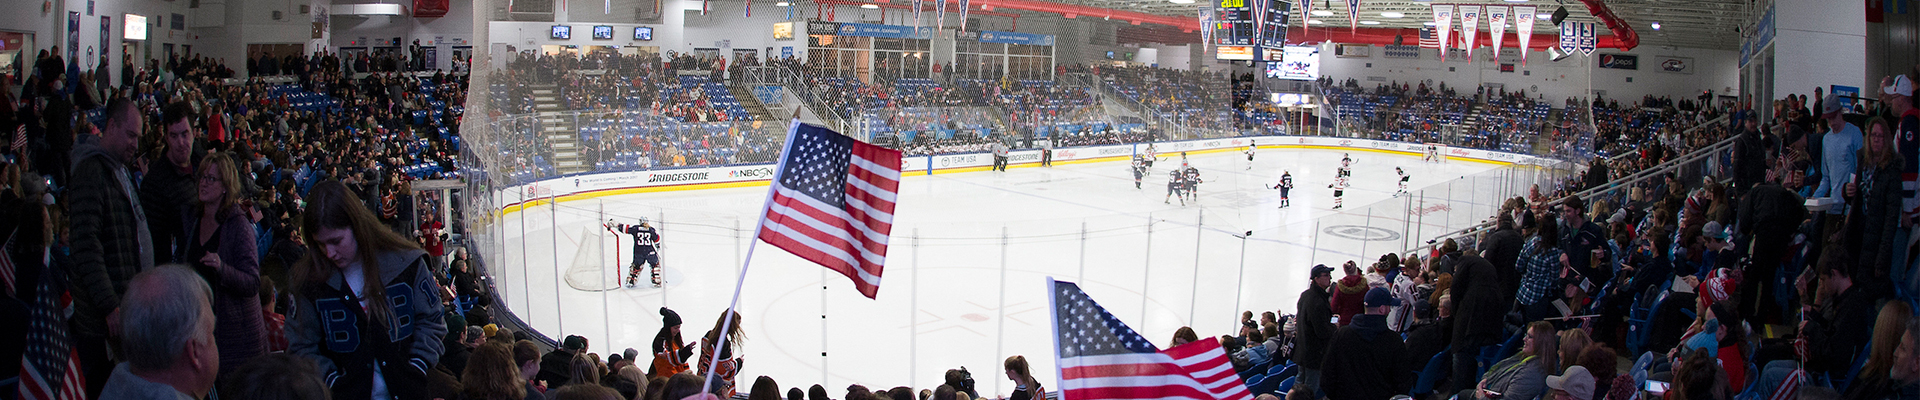 USA Hockey Arena